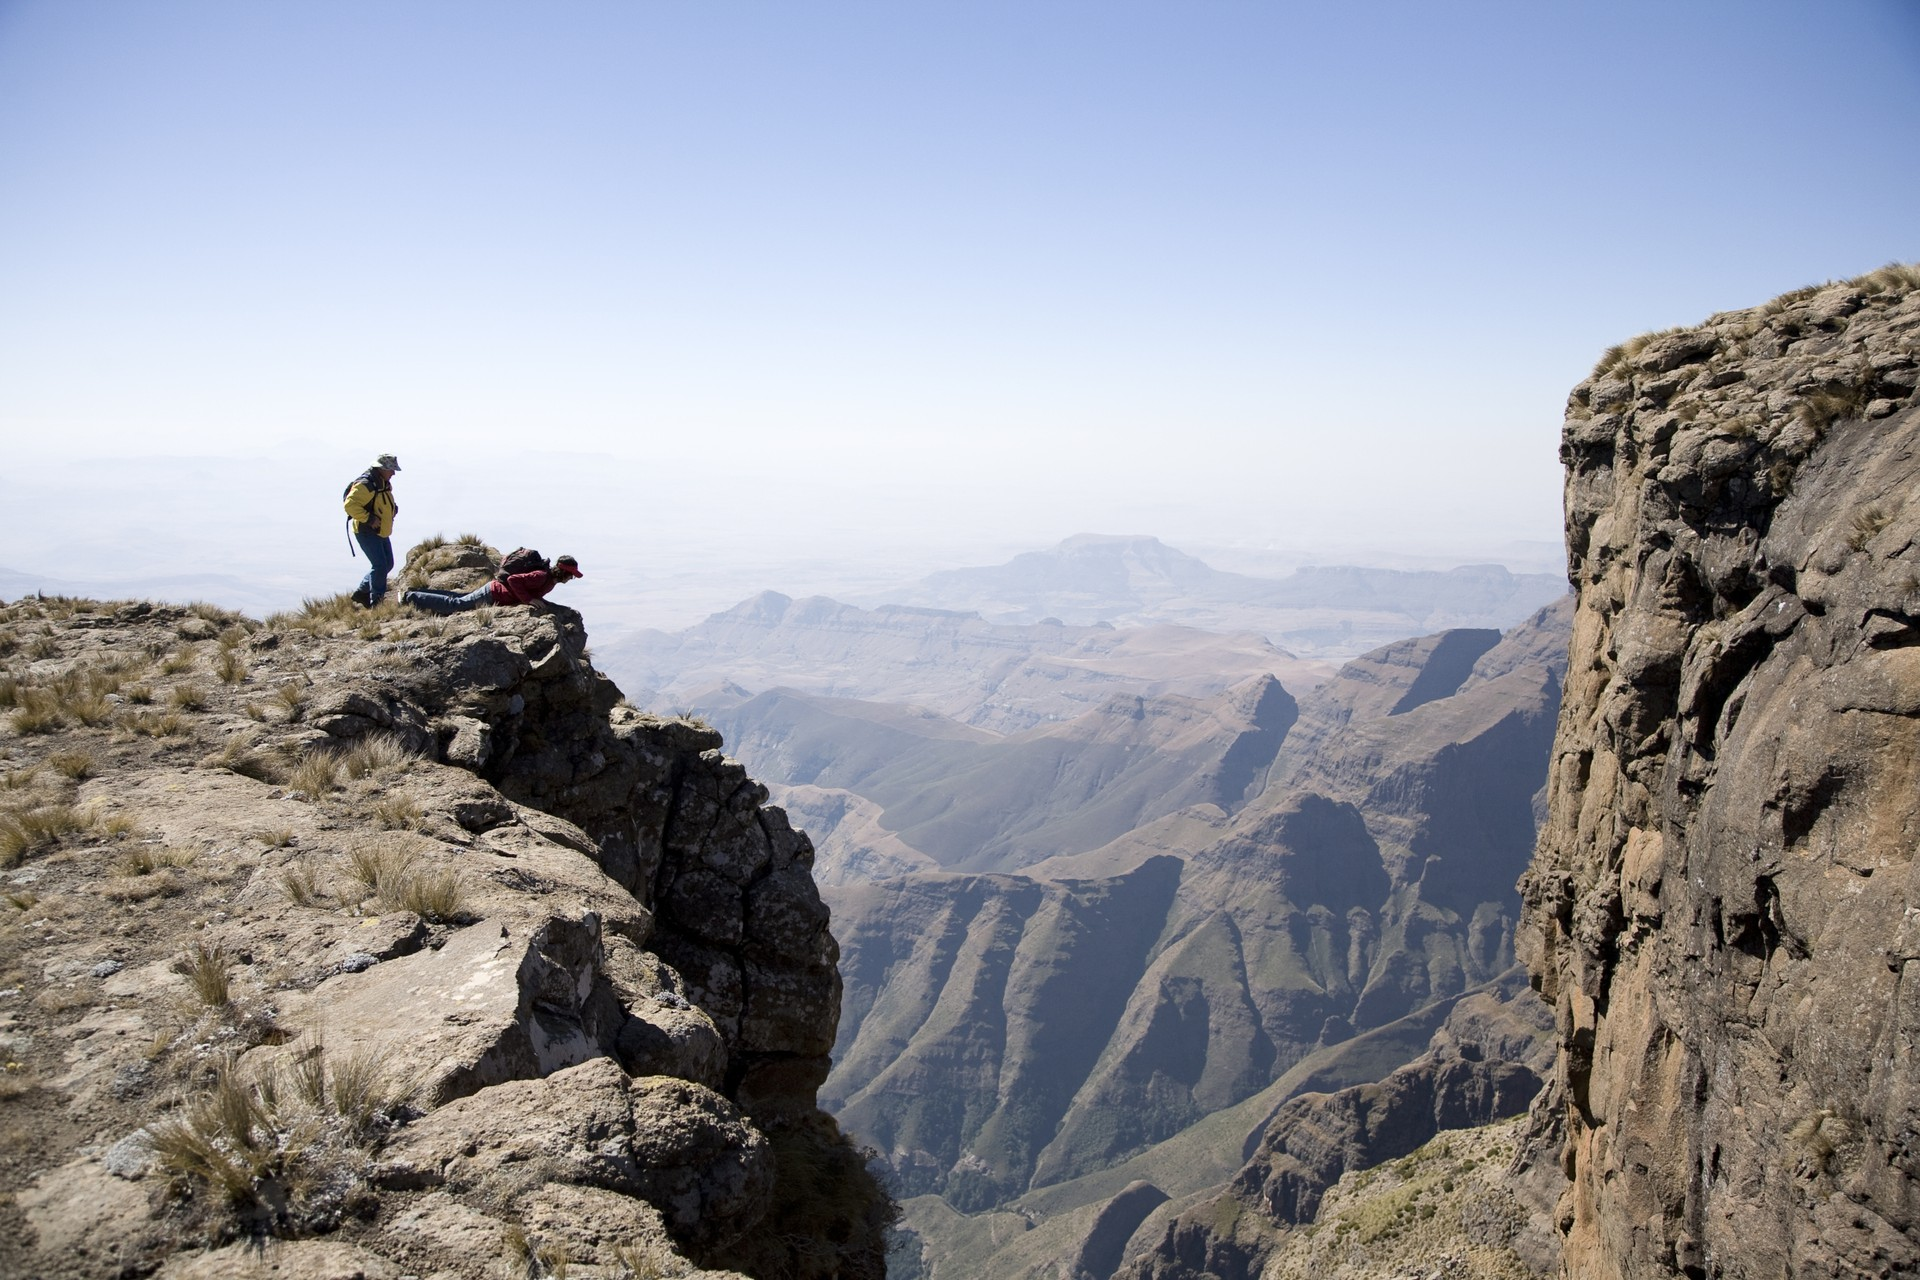 Two hikers in the Drakensberg Mountains in South Africa